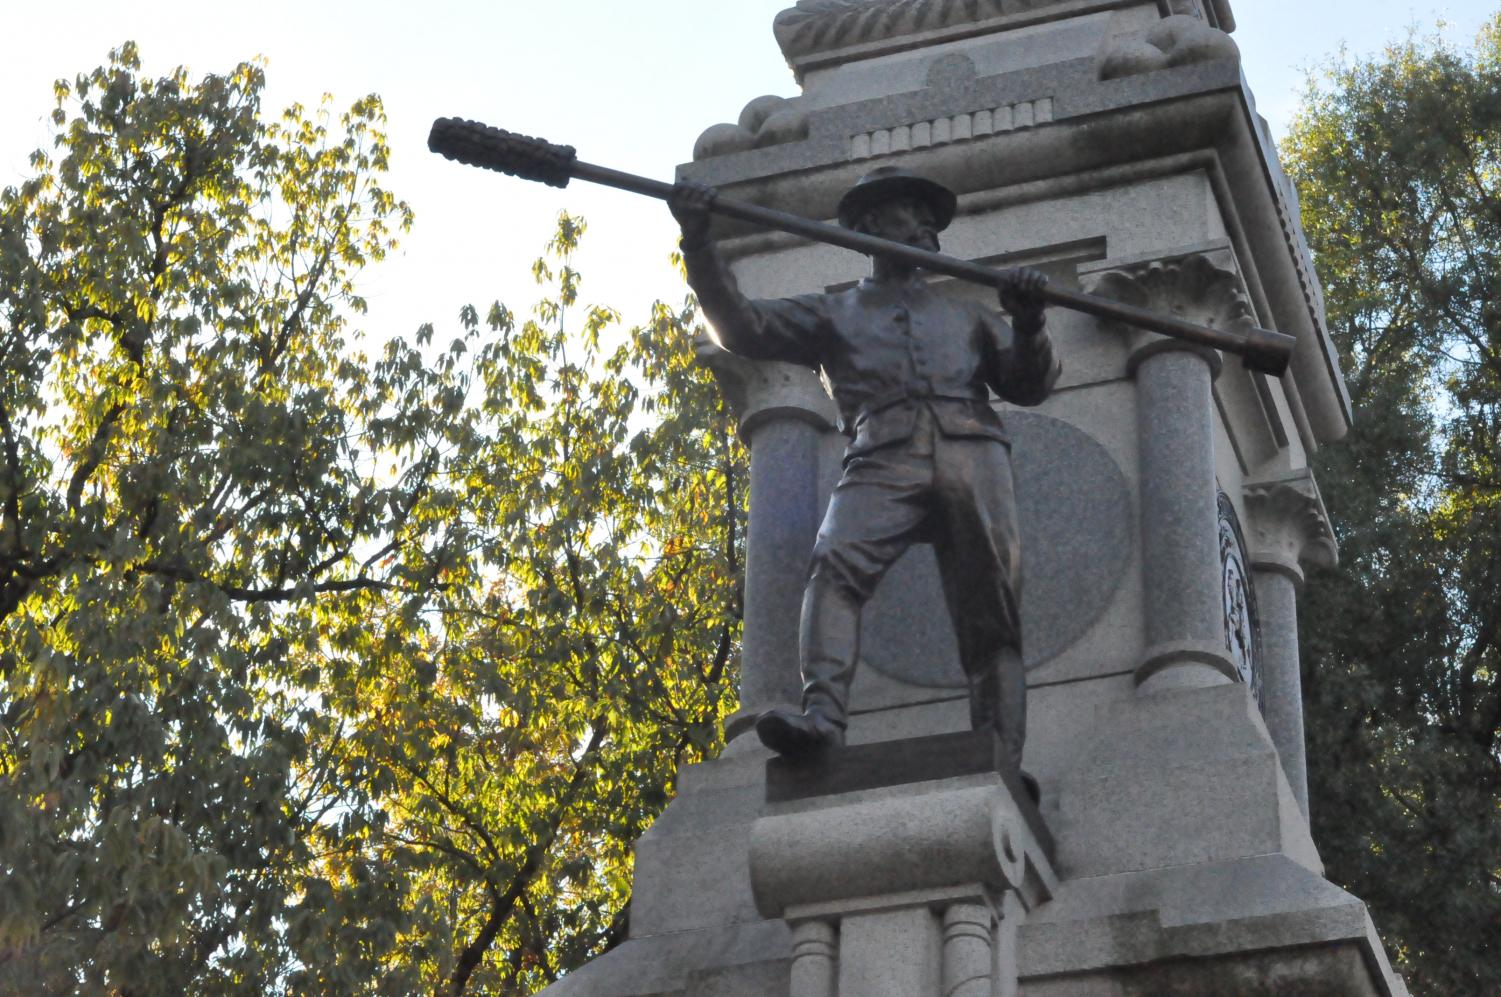 This monument is on the capital grounds in Raleigh, N.C. This commemorates the state's role in the Civil War.